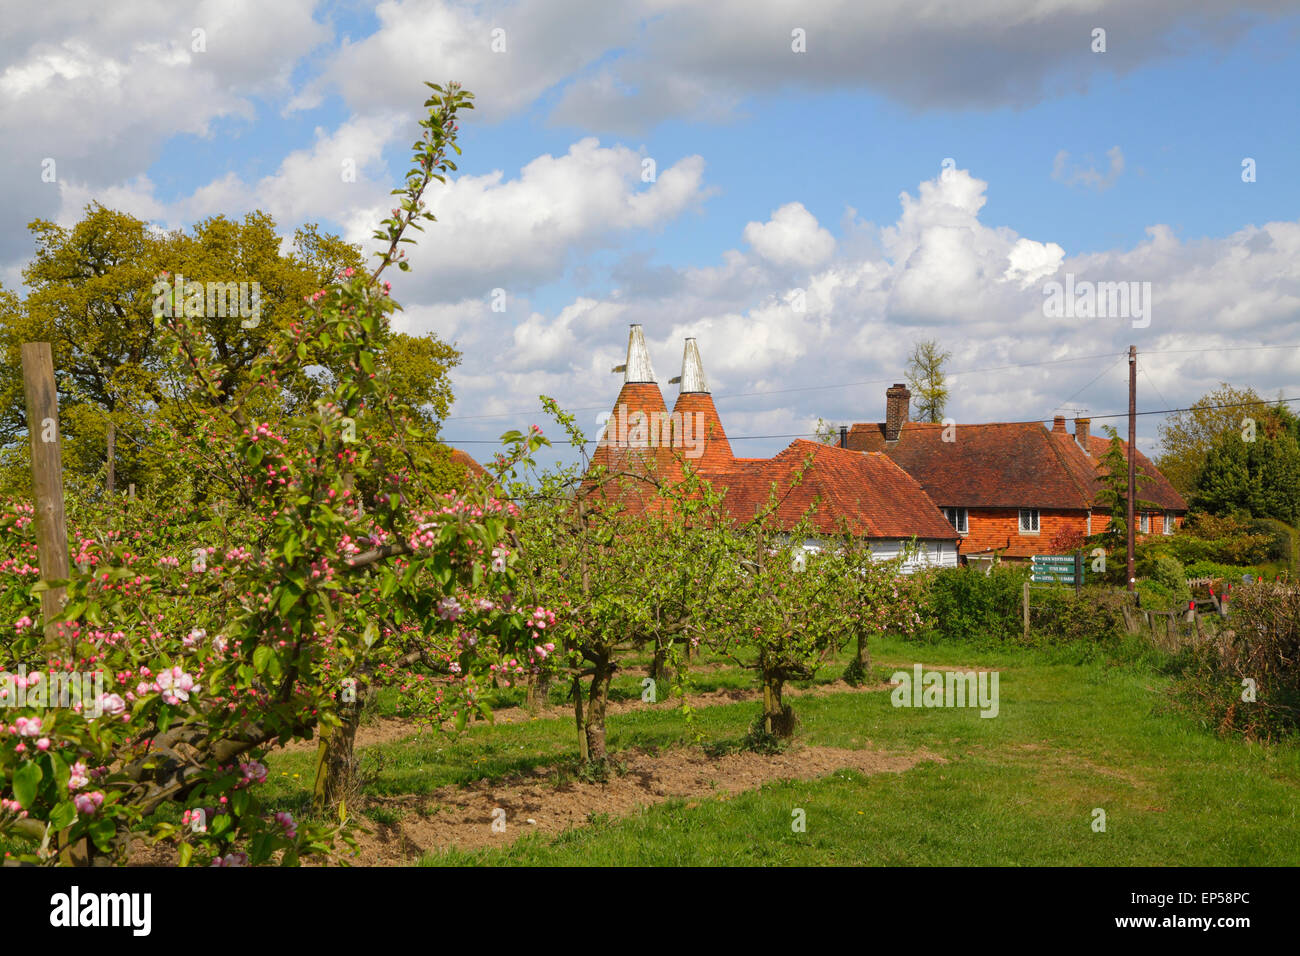 Oast Houses and Apple Blossom Kent, England, Britain, UK - Stock Image